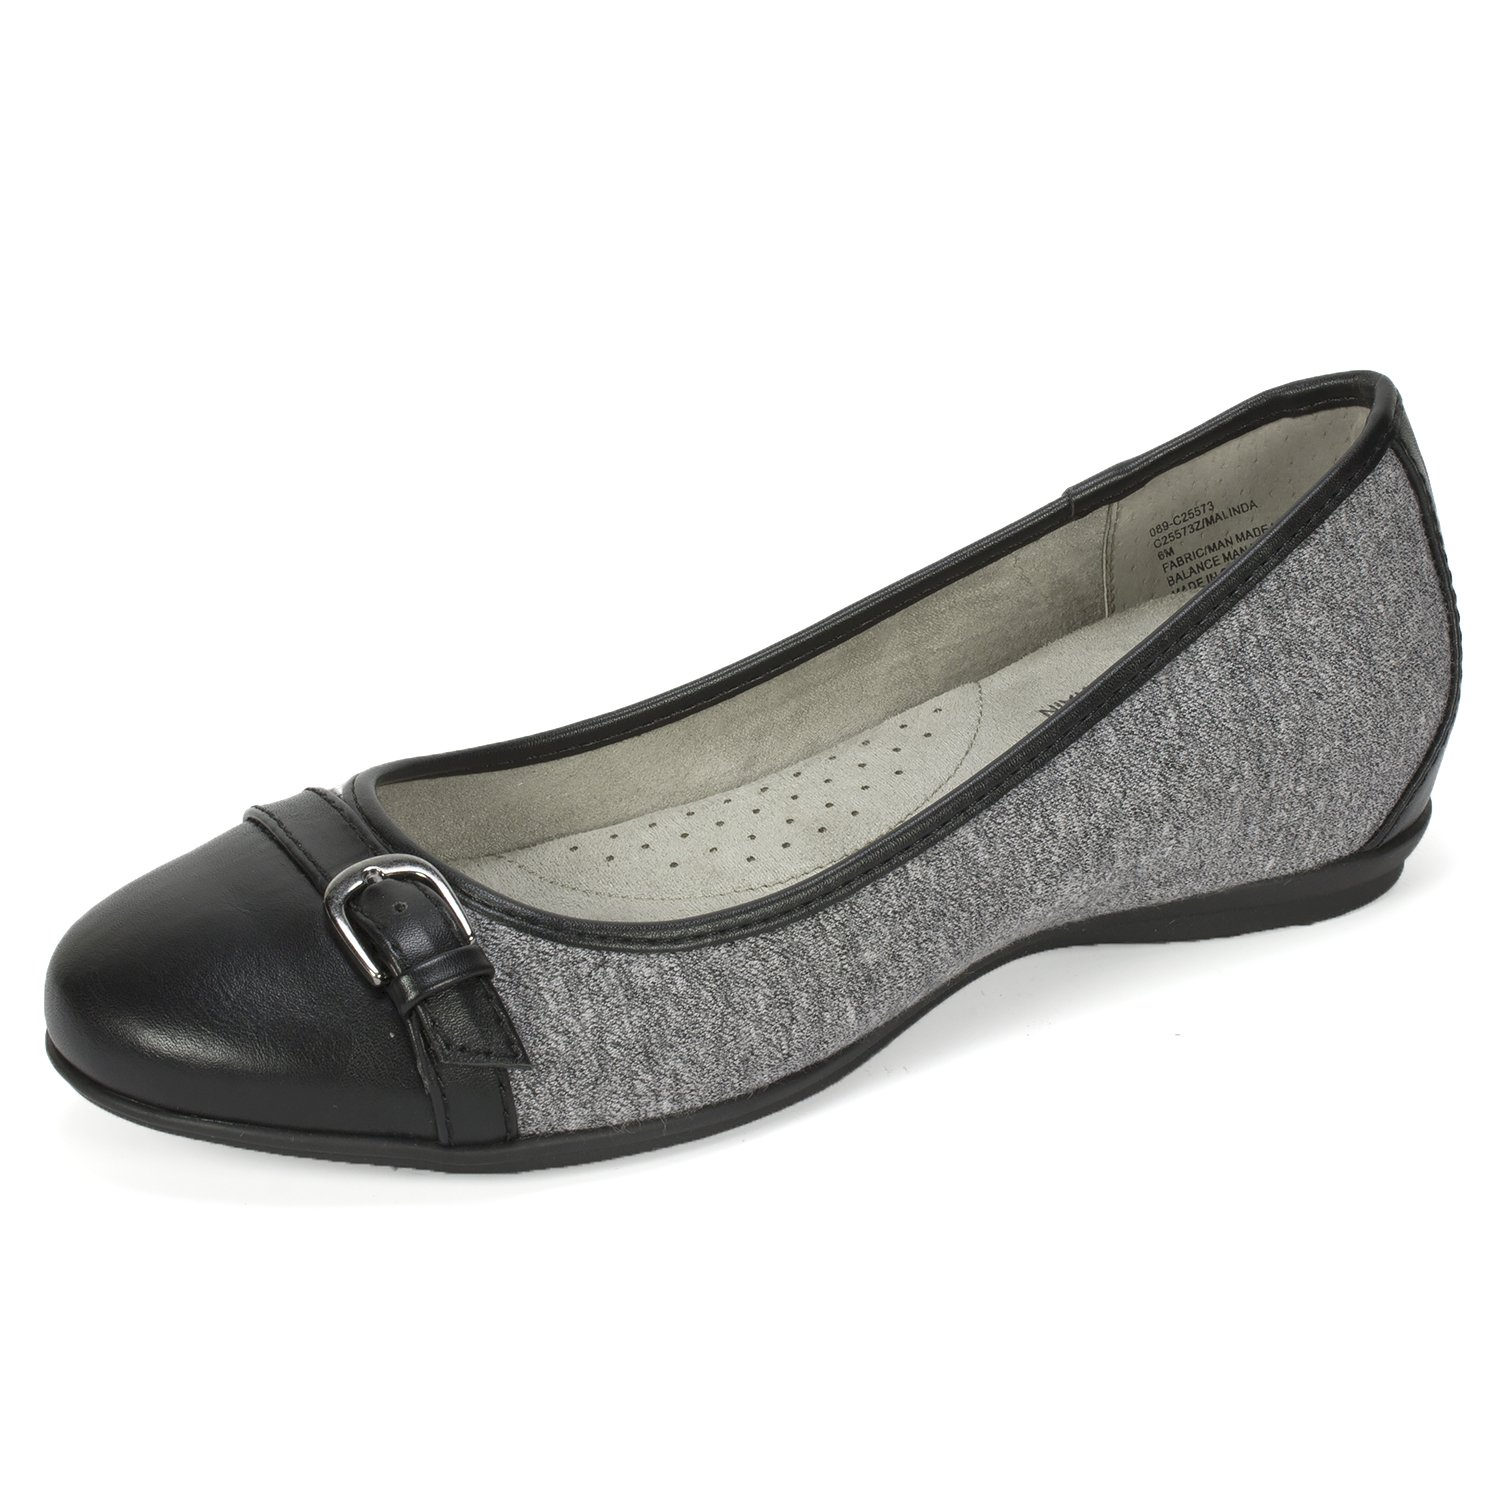 CLIFFS BY WHITE MOUNTAIN Cliffs Malinda Women's Flat B074KJC71J 10 B(M) US|Grey